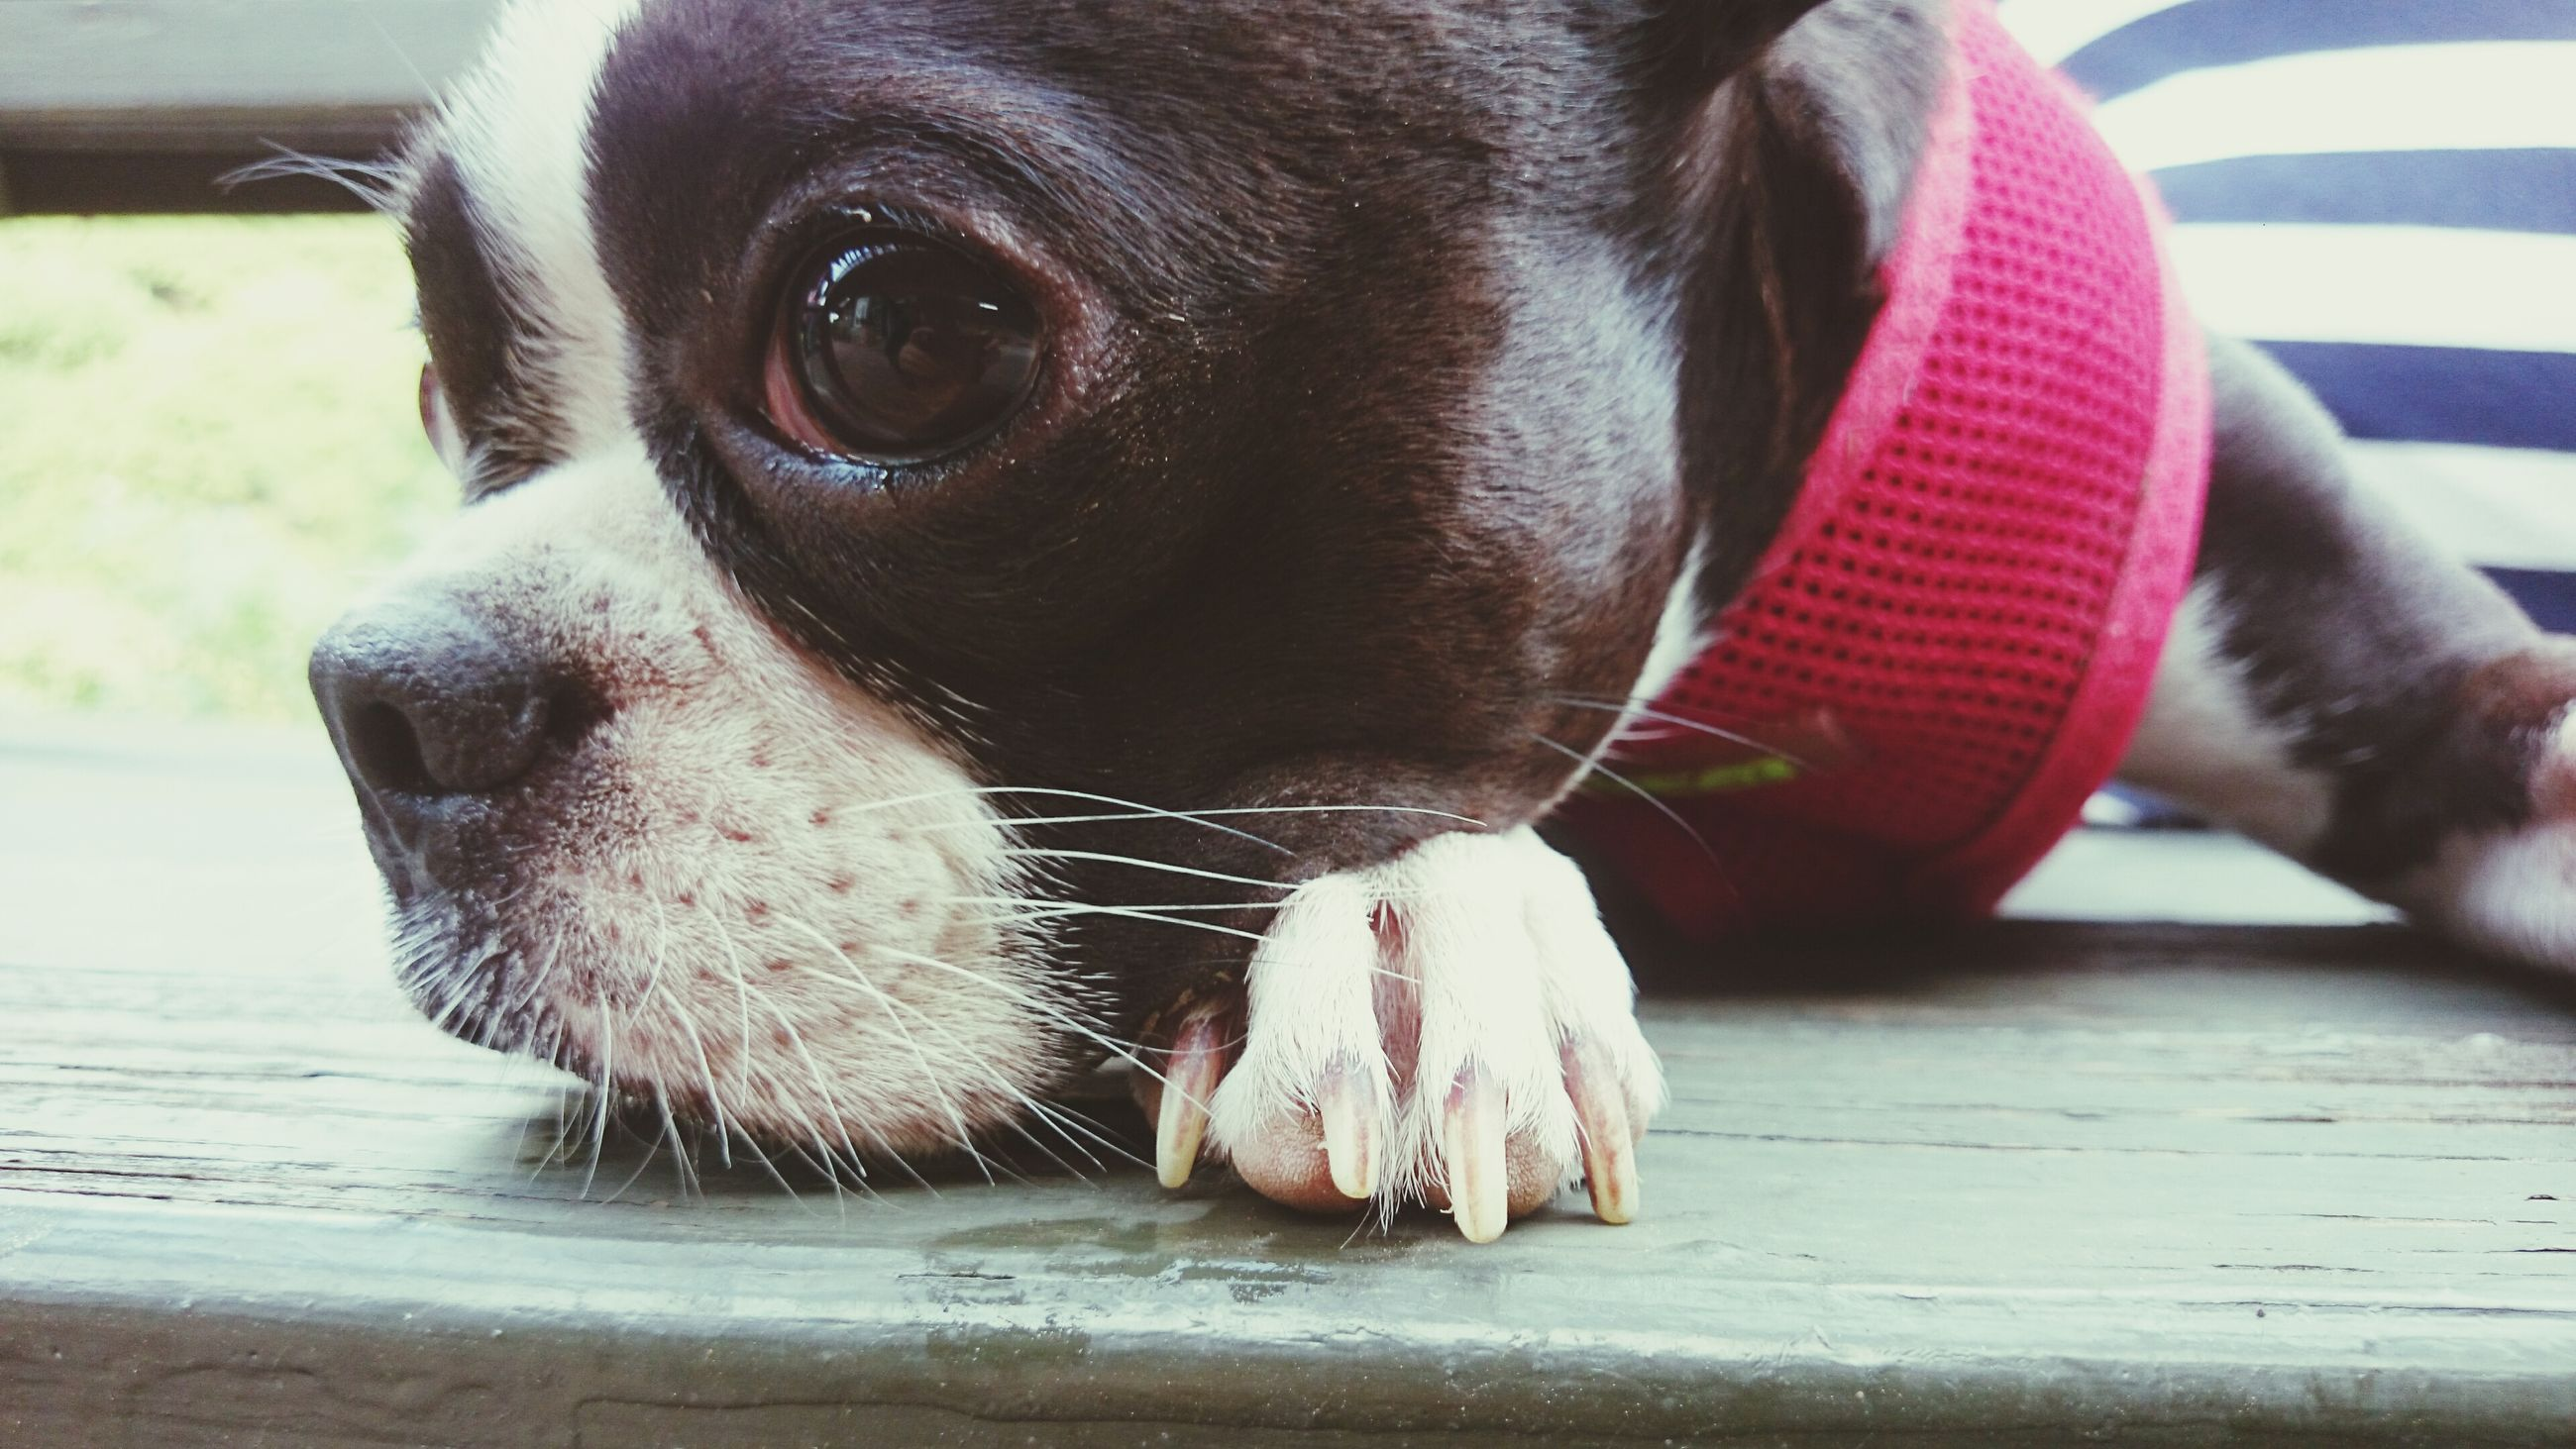 dog, domestic animals, one animal, animal themes, pets, mammal, animal head, close-up, animal body part, looking at camera, portrait, part of, pet collar, focus on foreground, day, canine, sitting, indoors, animal tongue